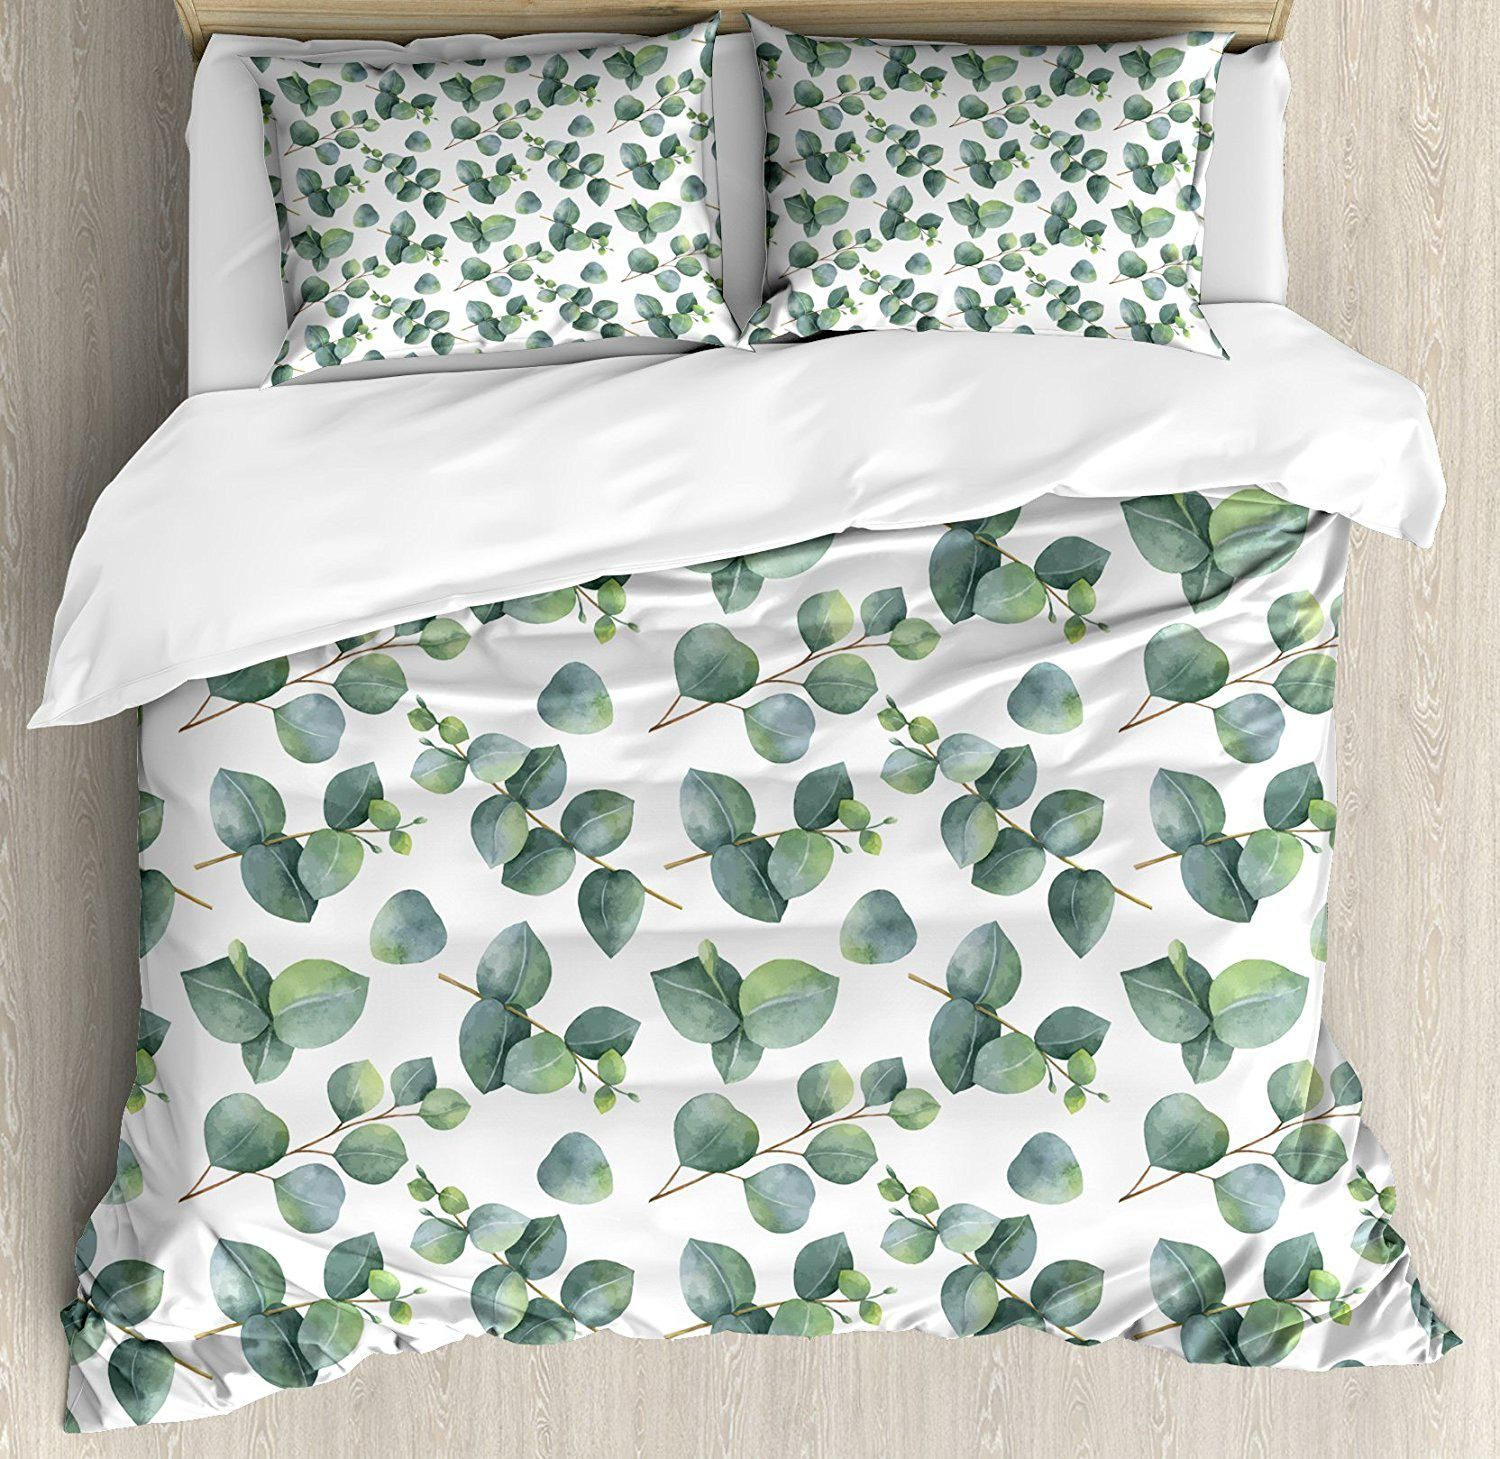 Leaf Duvet Cover Set, Watercolor Style Pattern With Silver Dollar